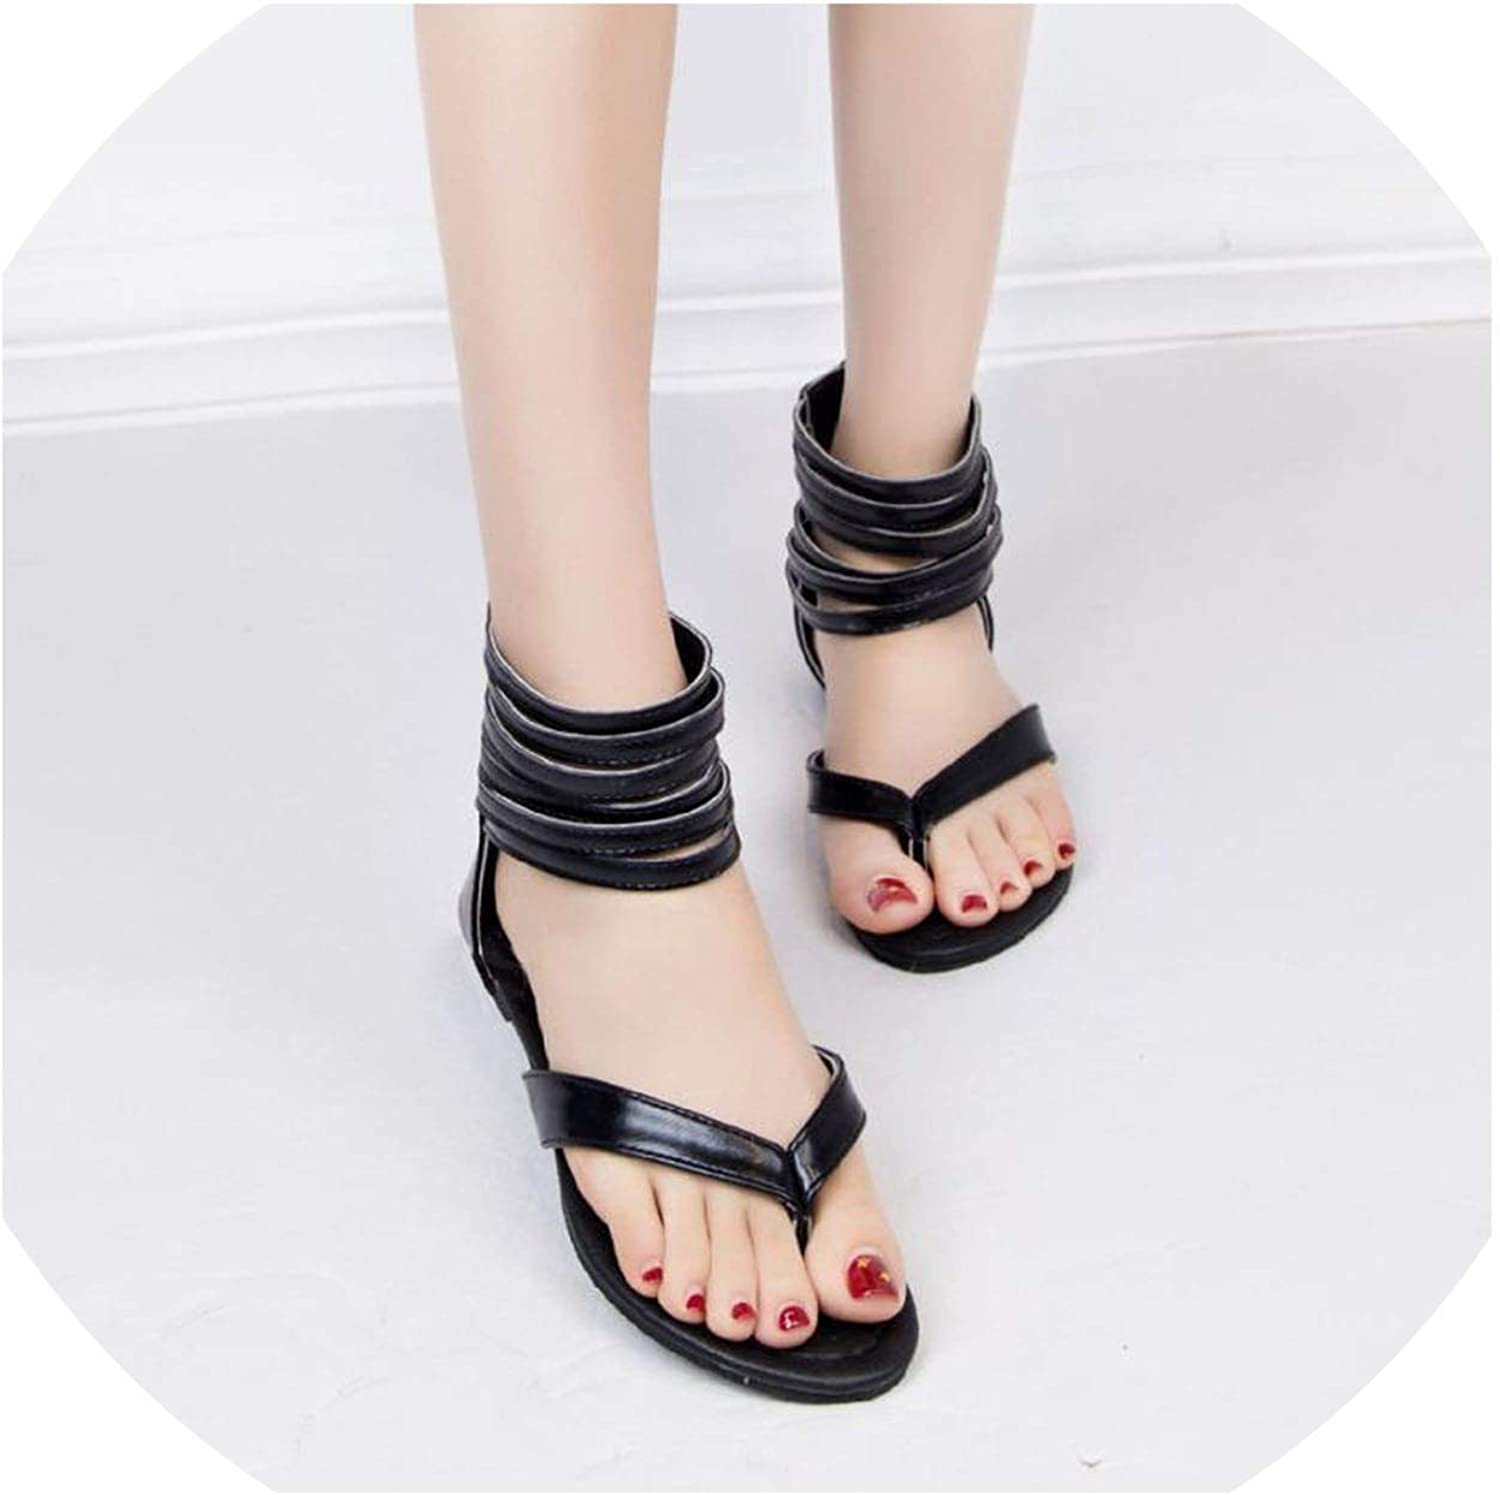 Old street Women Flats Sandals Clip Clop Zipper Woman Summer shoes Woman Beach Daily Footwera